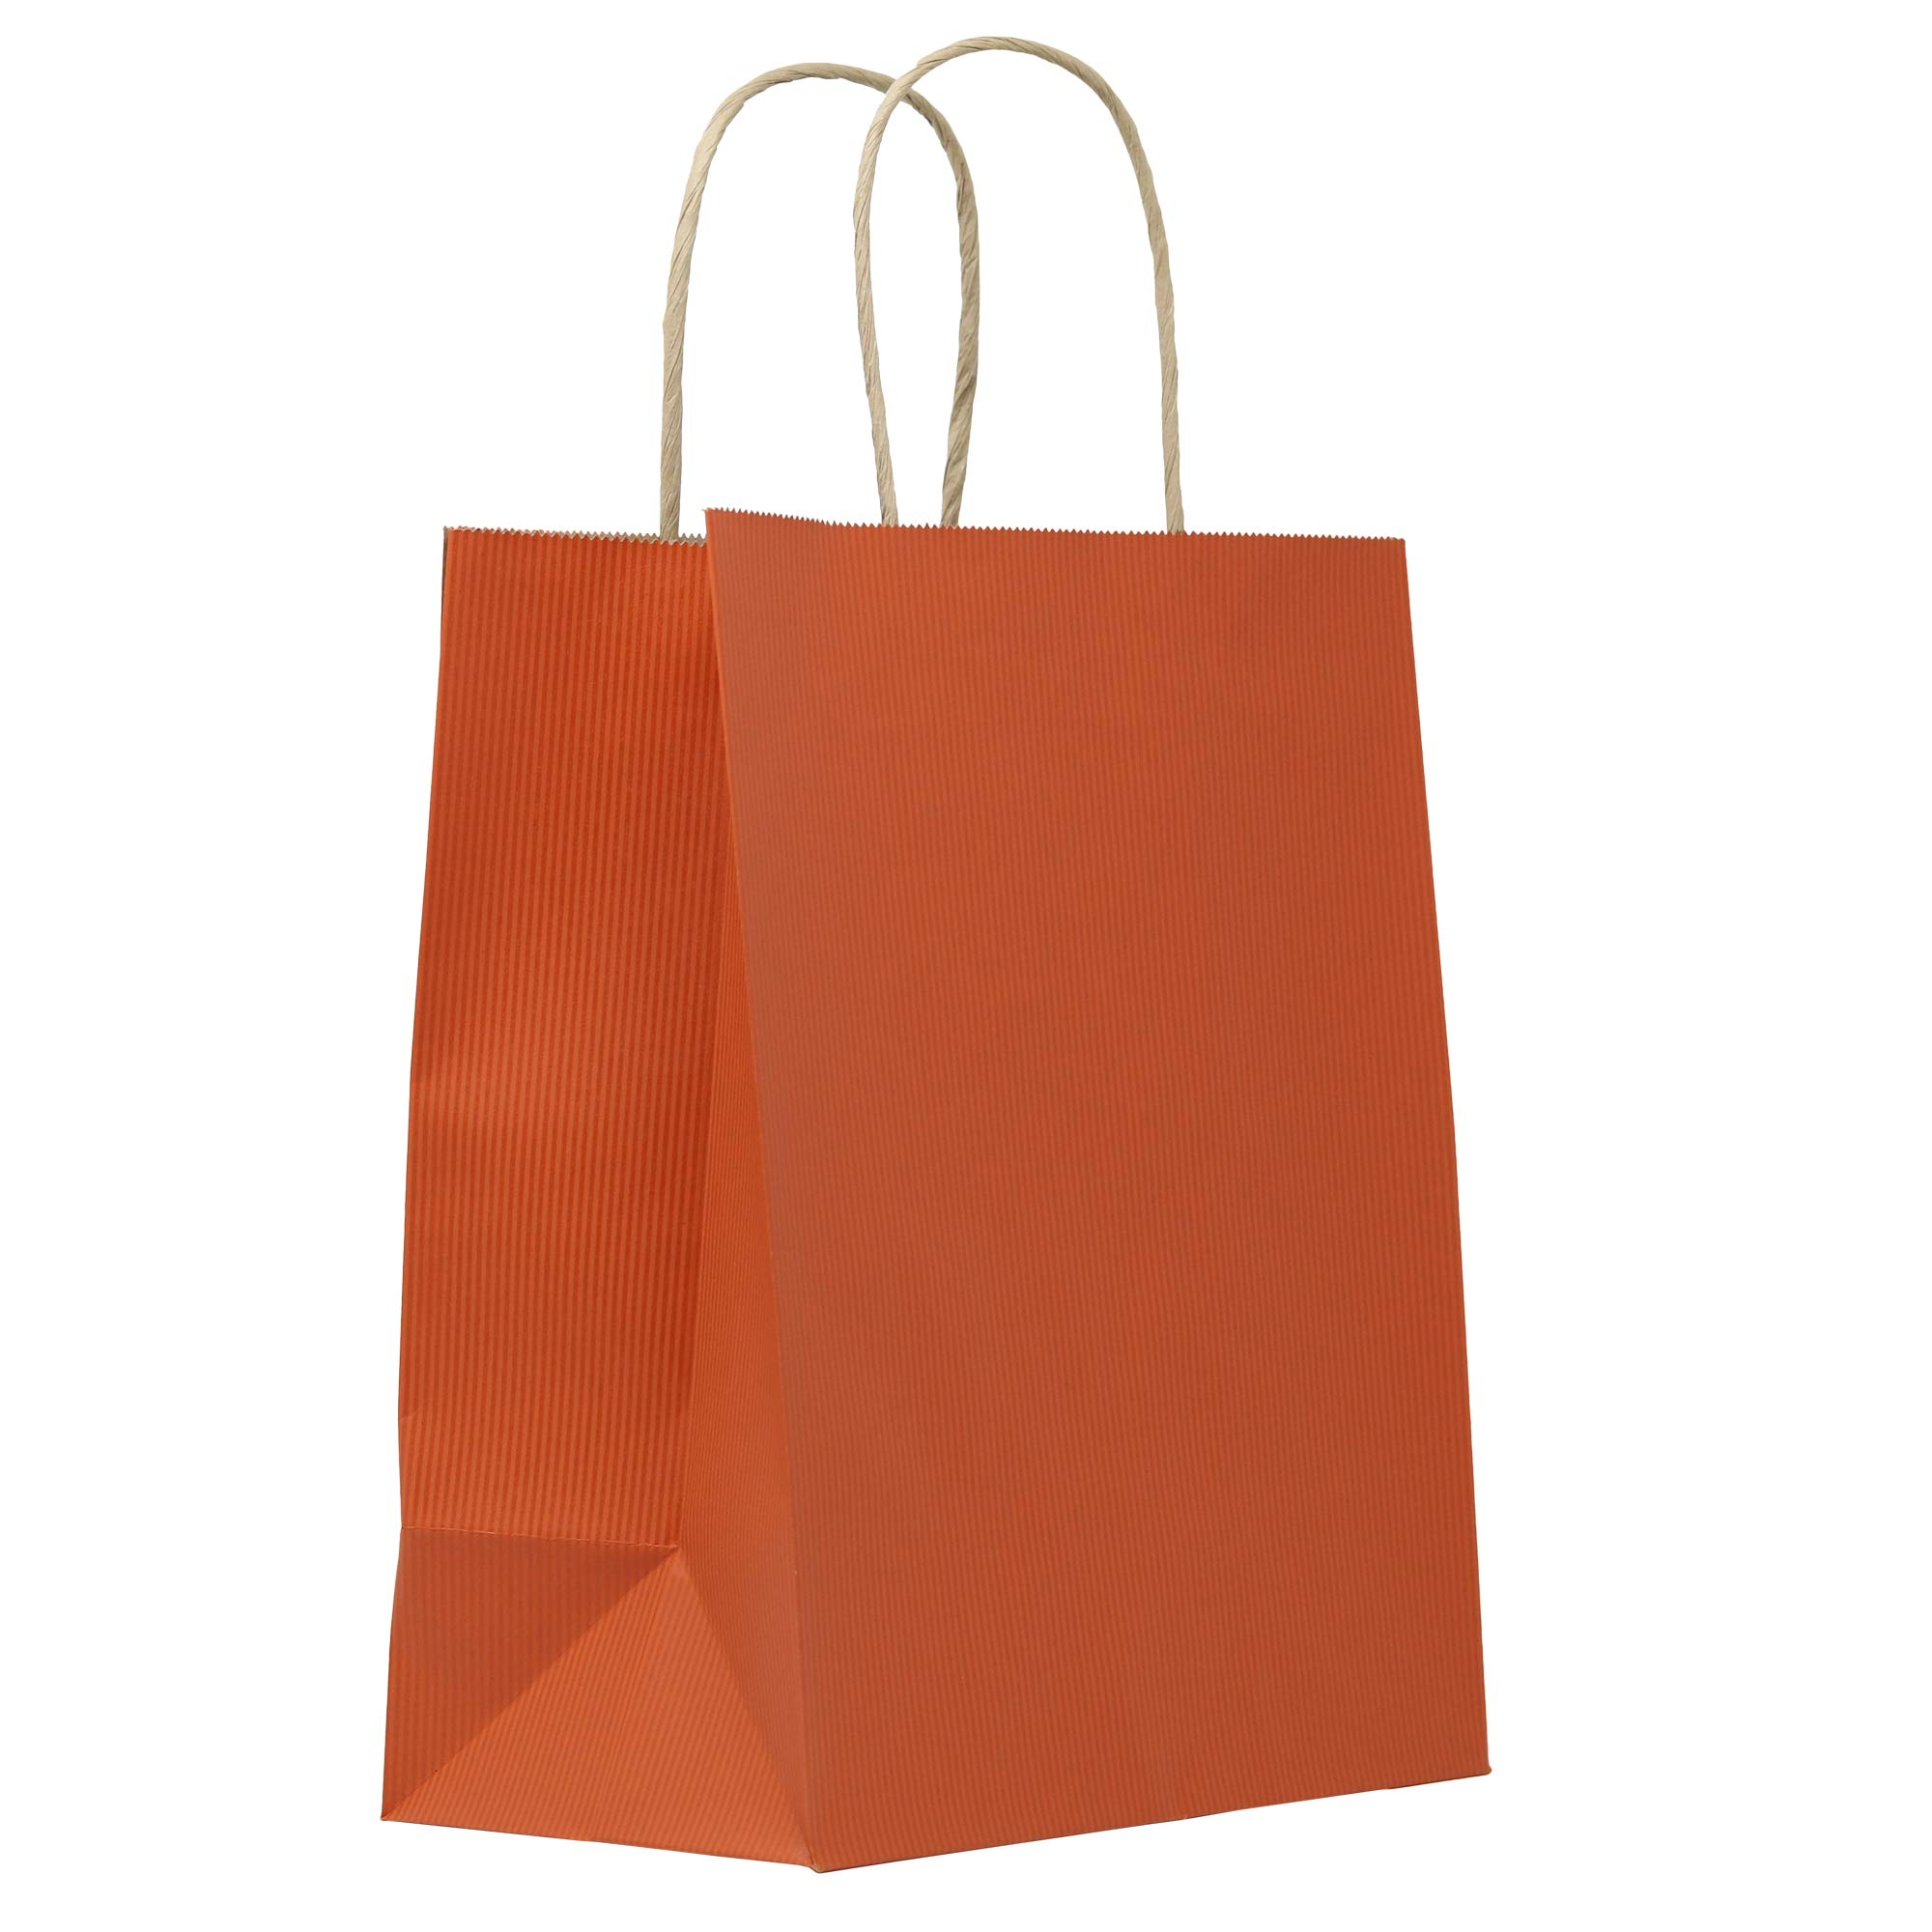 PTP - 8'' x 5'' x 10'' - Terracotta Orange (Stripes) Kraft Paper Gift Tote Bags - 250 Count | Perfect for Restaurants, Birthdays, Weddings, Holidays and All Occasions by PTP BAGS